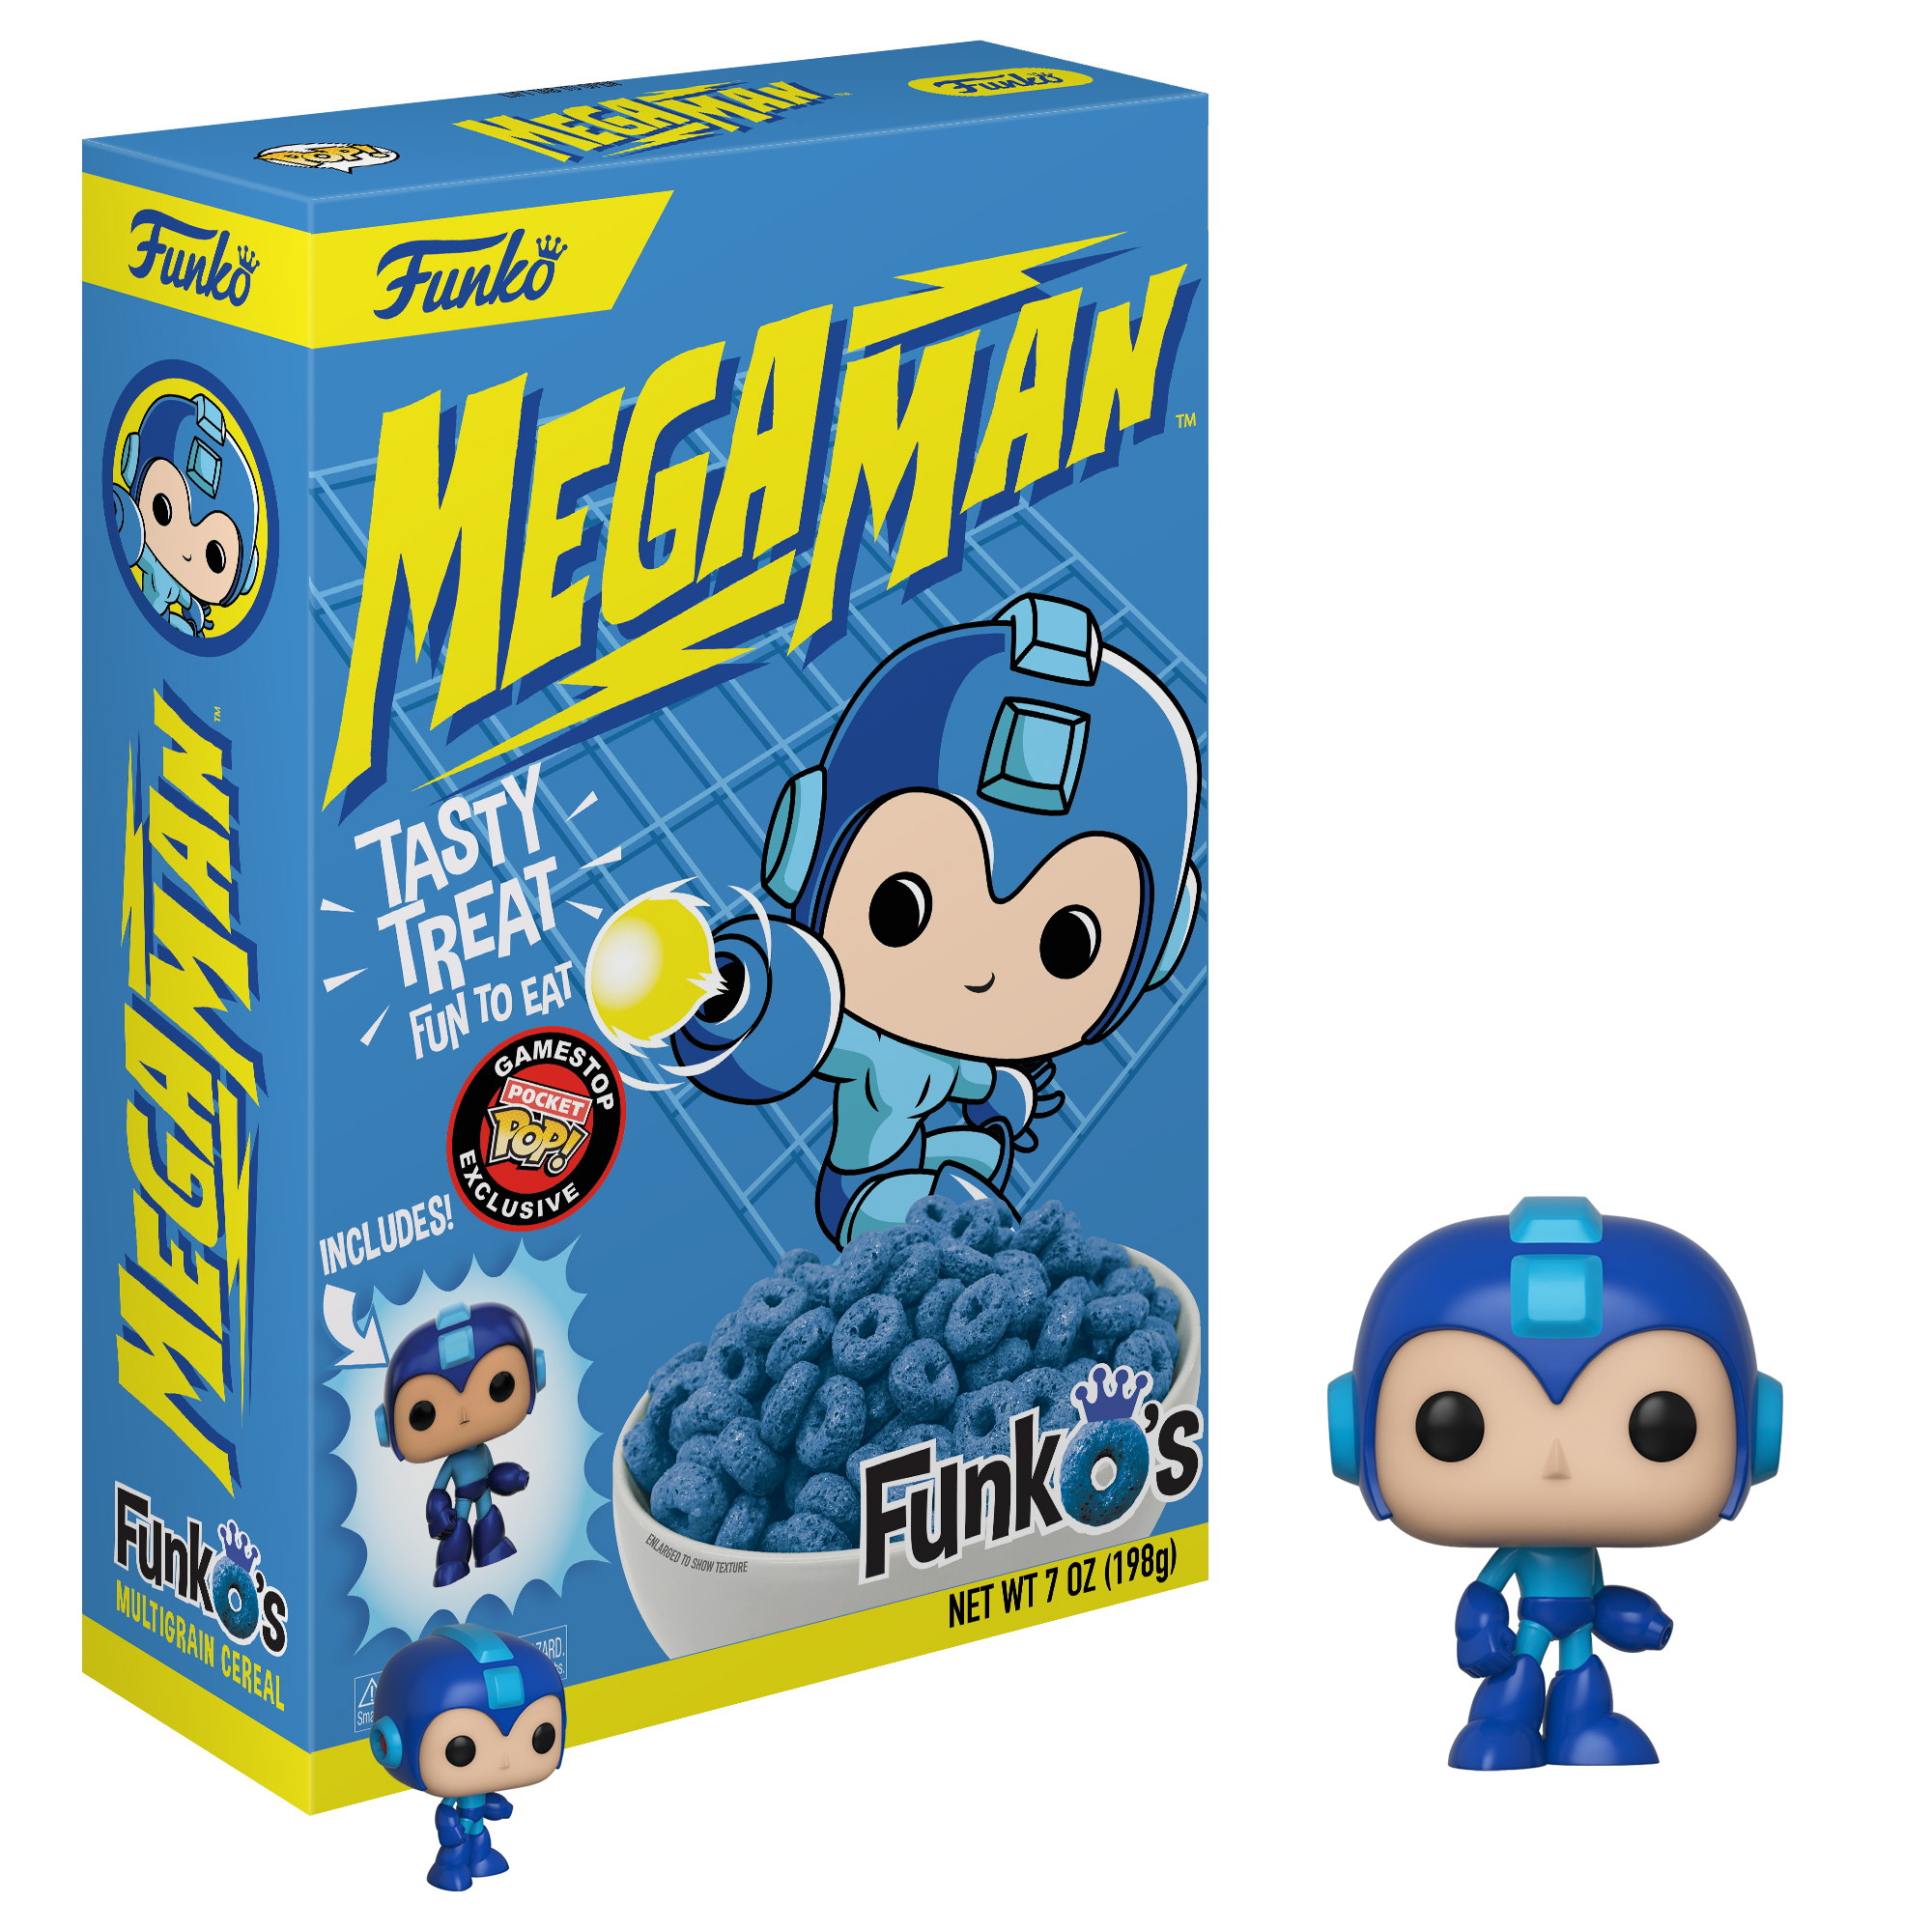 33694_35173_MegaMan_FunkOs_GLAM_GS.png